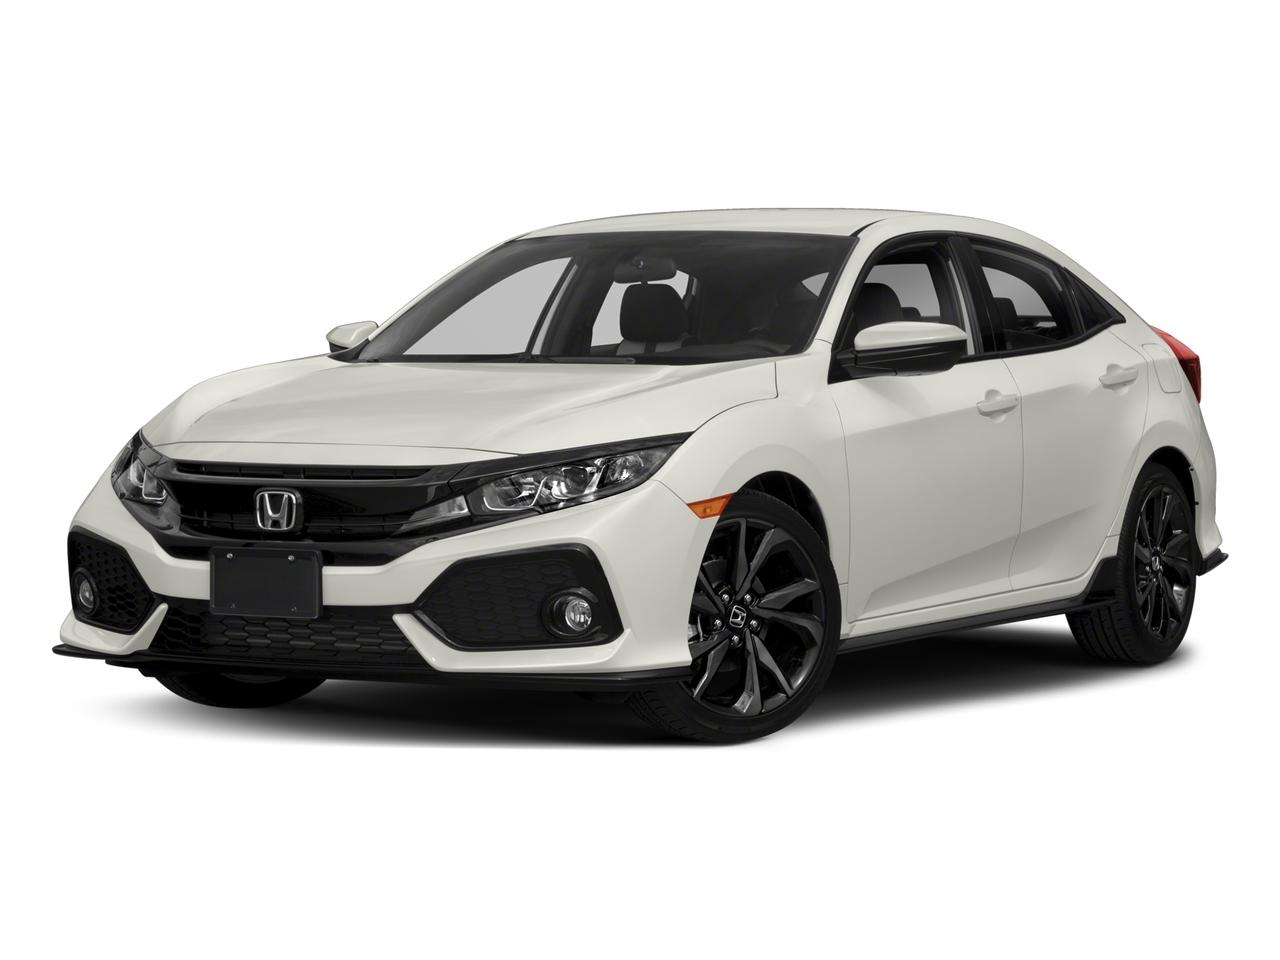 2018 Honda Civic Hatchback Vehicle Photo in Tulsa, OK 74133